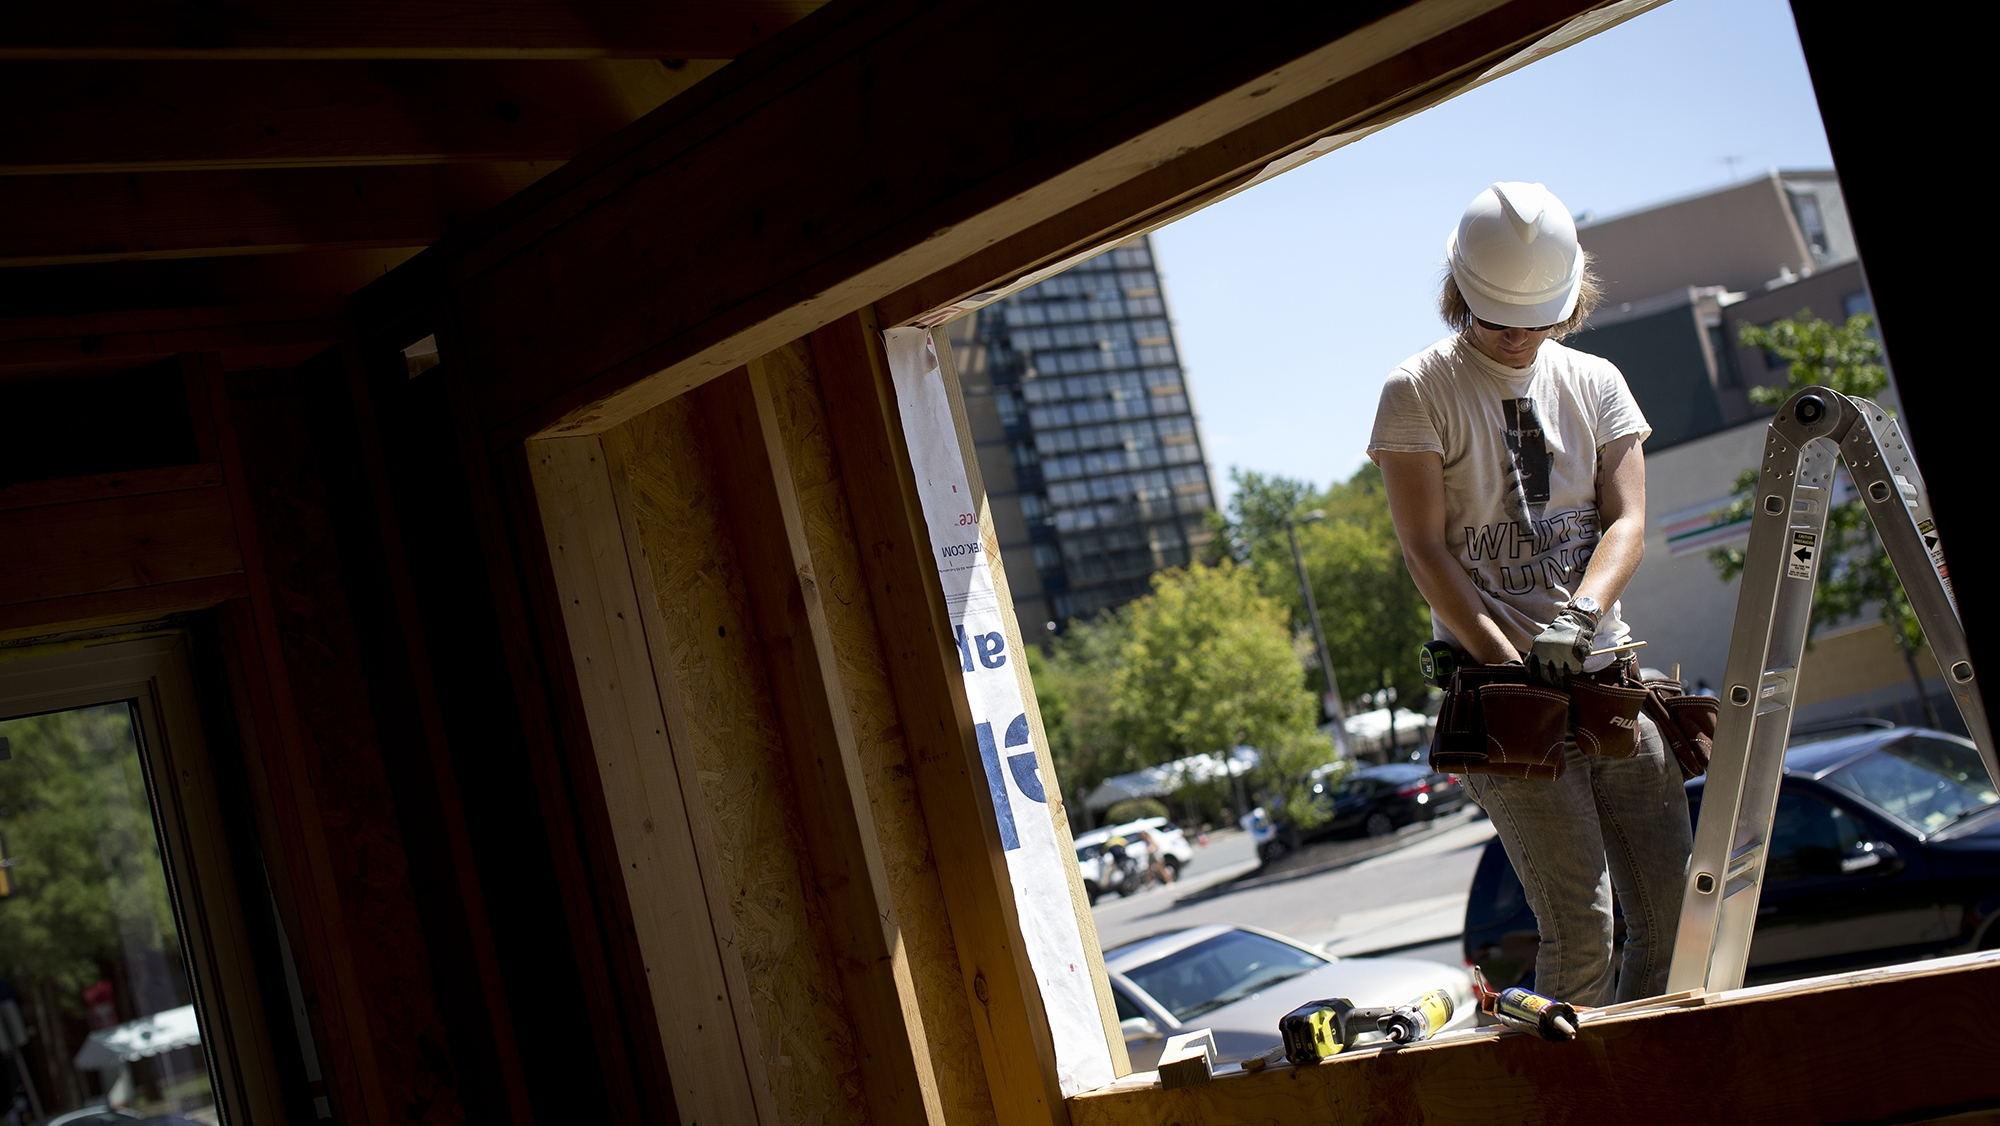 A construction worker as seen from the inside of the tiny house.